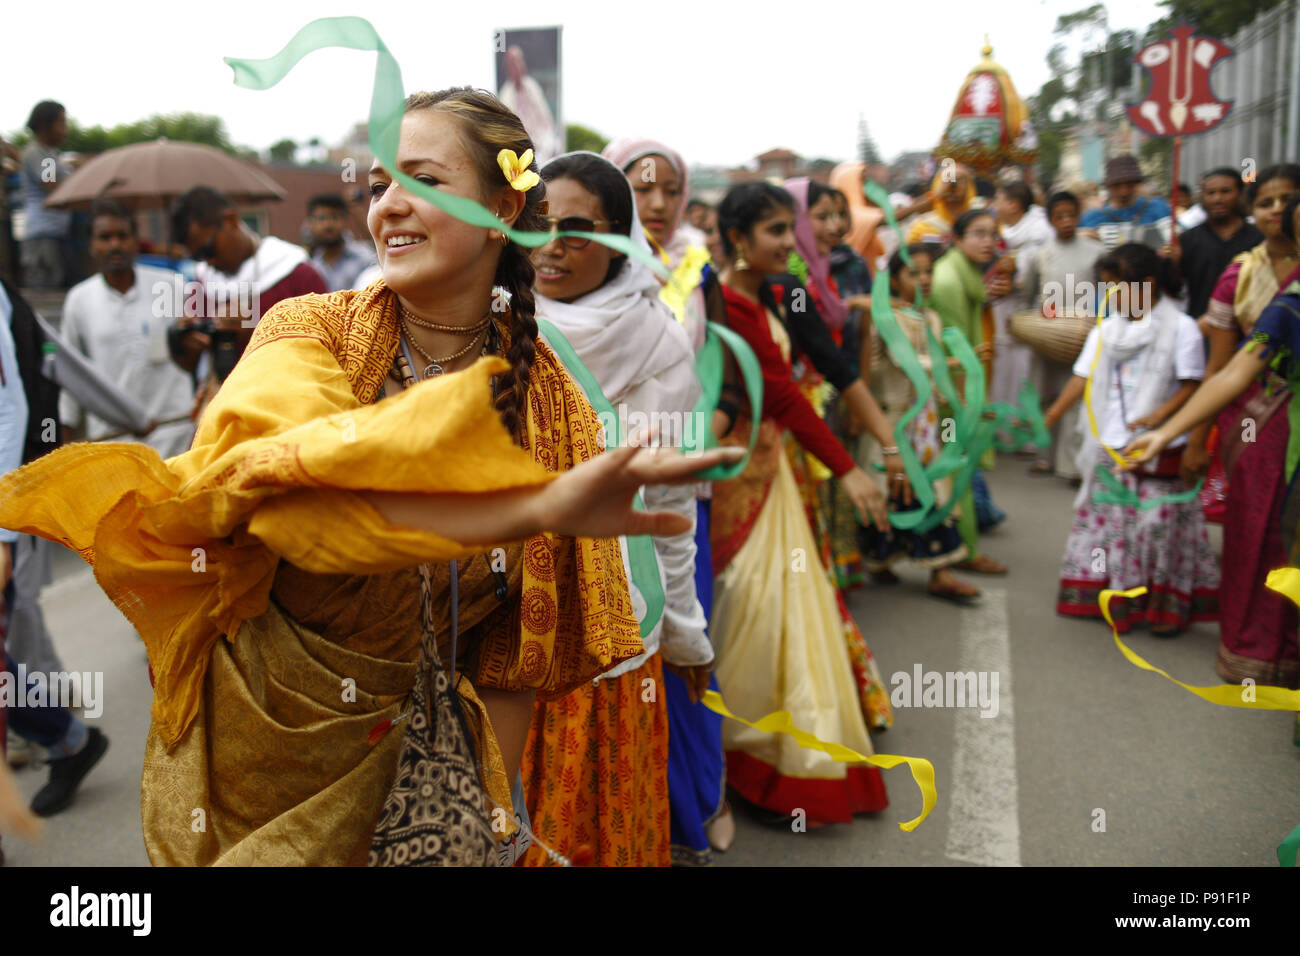 Kathmandu, Nepal. 14th July, 2018. Devotees dressed in traditional attire dance and sing during a procession held to celebrate Jagannath Rath Yatra, a chariot festival in Kathmandu, Nepal on Saturday, July 14, 2018. This procession is a replica of the famous Jagannath Rath Yatra held annually in Jagannath Puri, Odisha since 10th-11th century. Ratha Yatra is a festival that involves moving deities Jagannath, Balabhadra, Subhadra and Sudarshana on a chariot. Credit: Skanda Gautam/ZUMA Wire/Alamy Live News Stock Photo